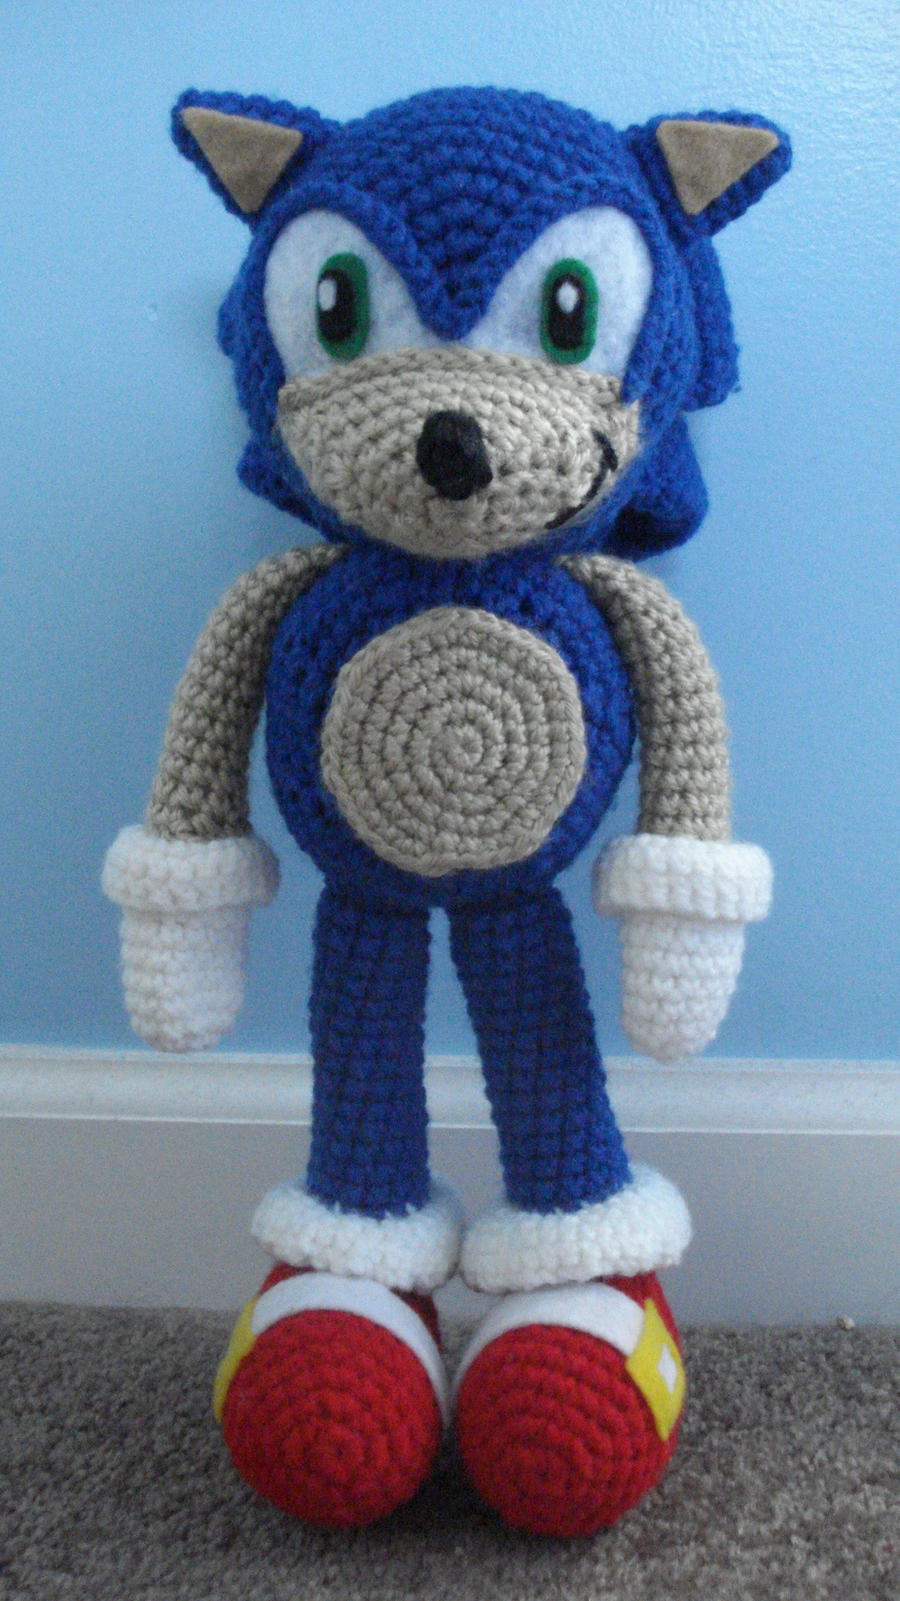 sonic the hedgehog amigurumi by TheArtisansNook on DeviantArt